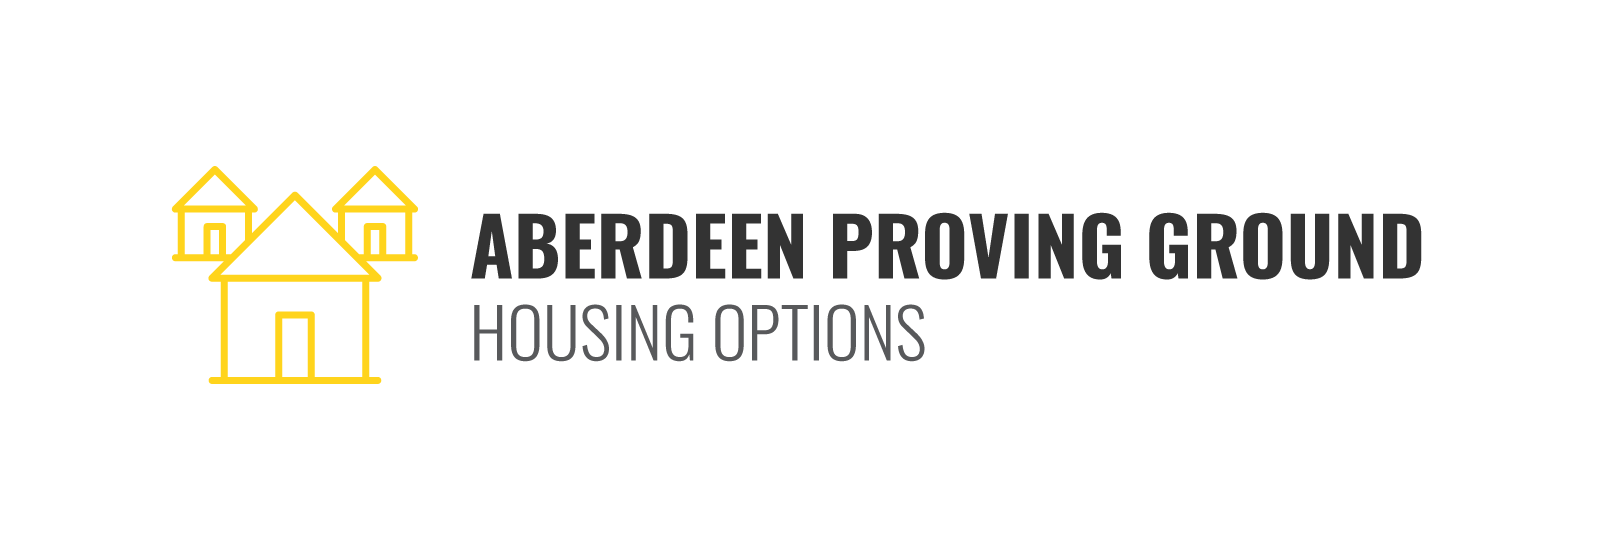 Aberdeen Proving Ground Housing Options